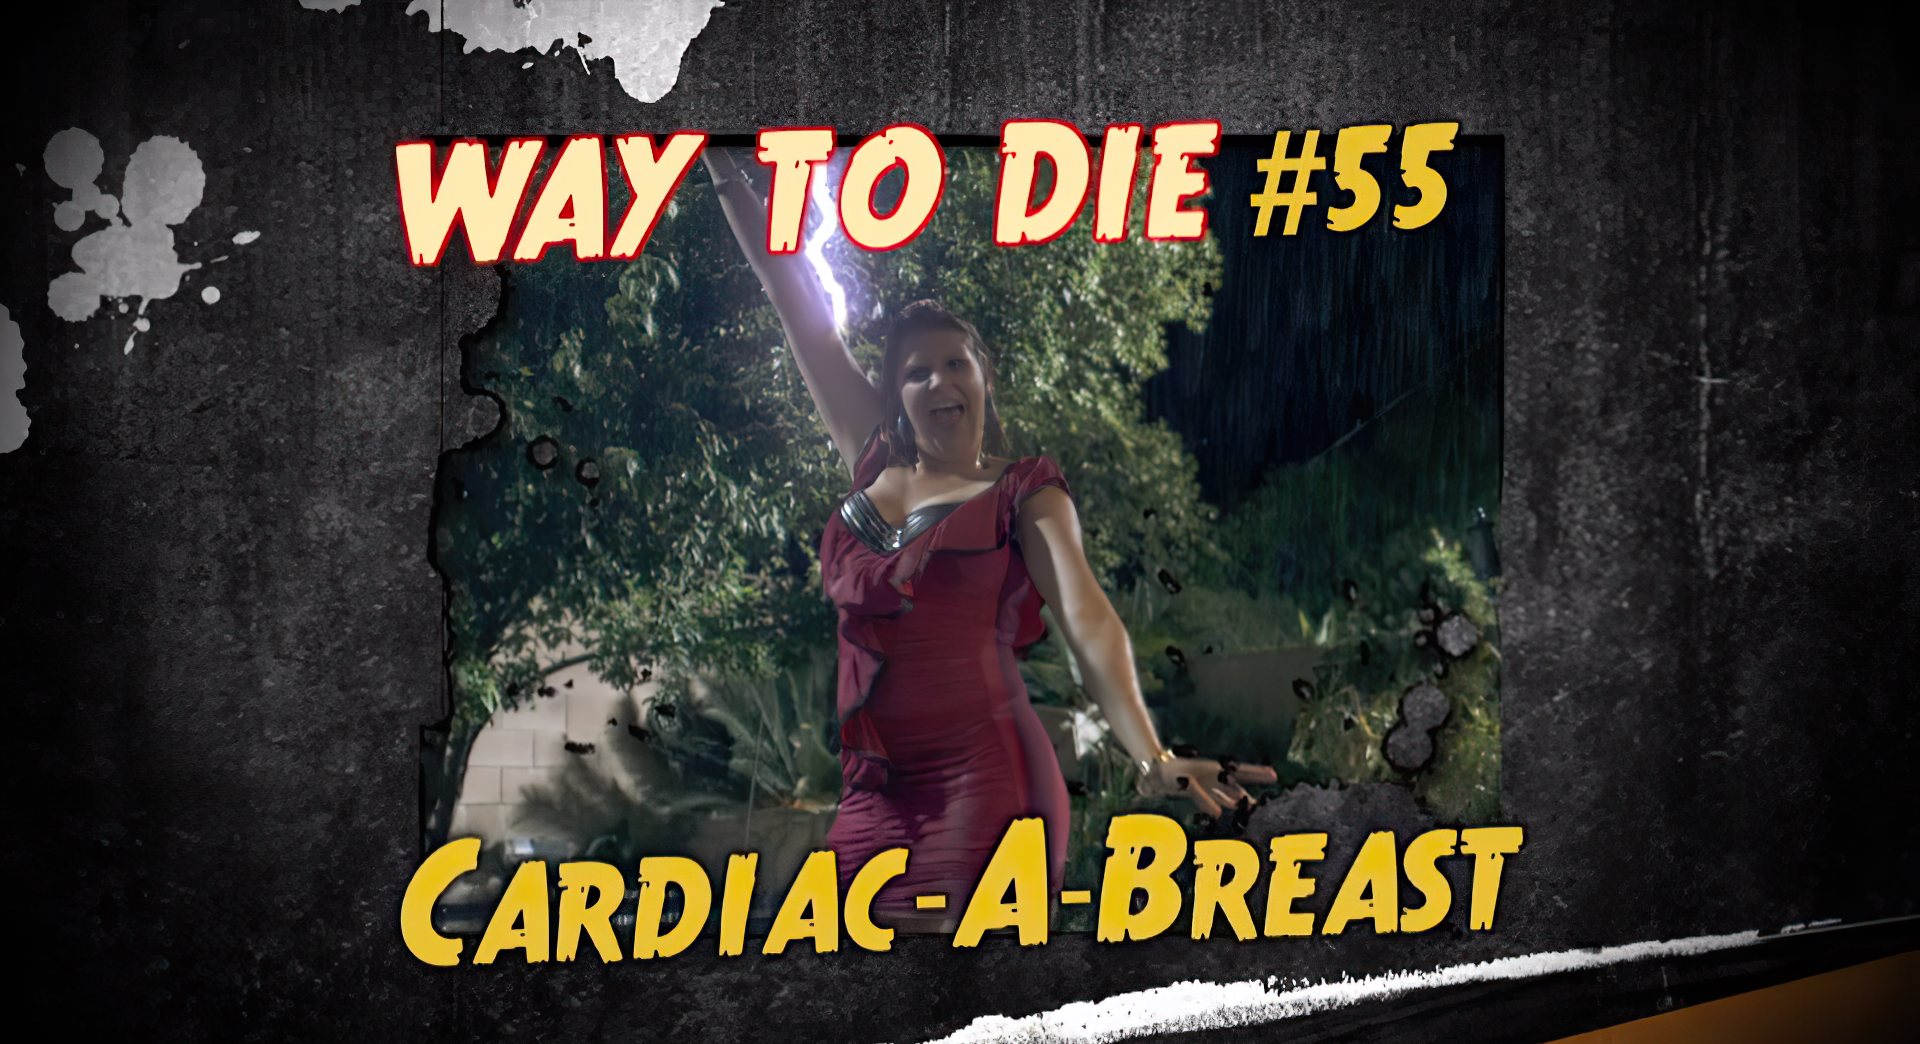 Cardiac-A-Breast